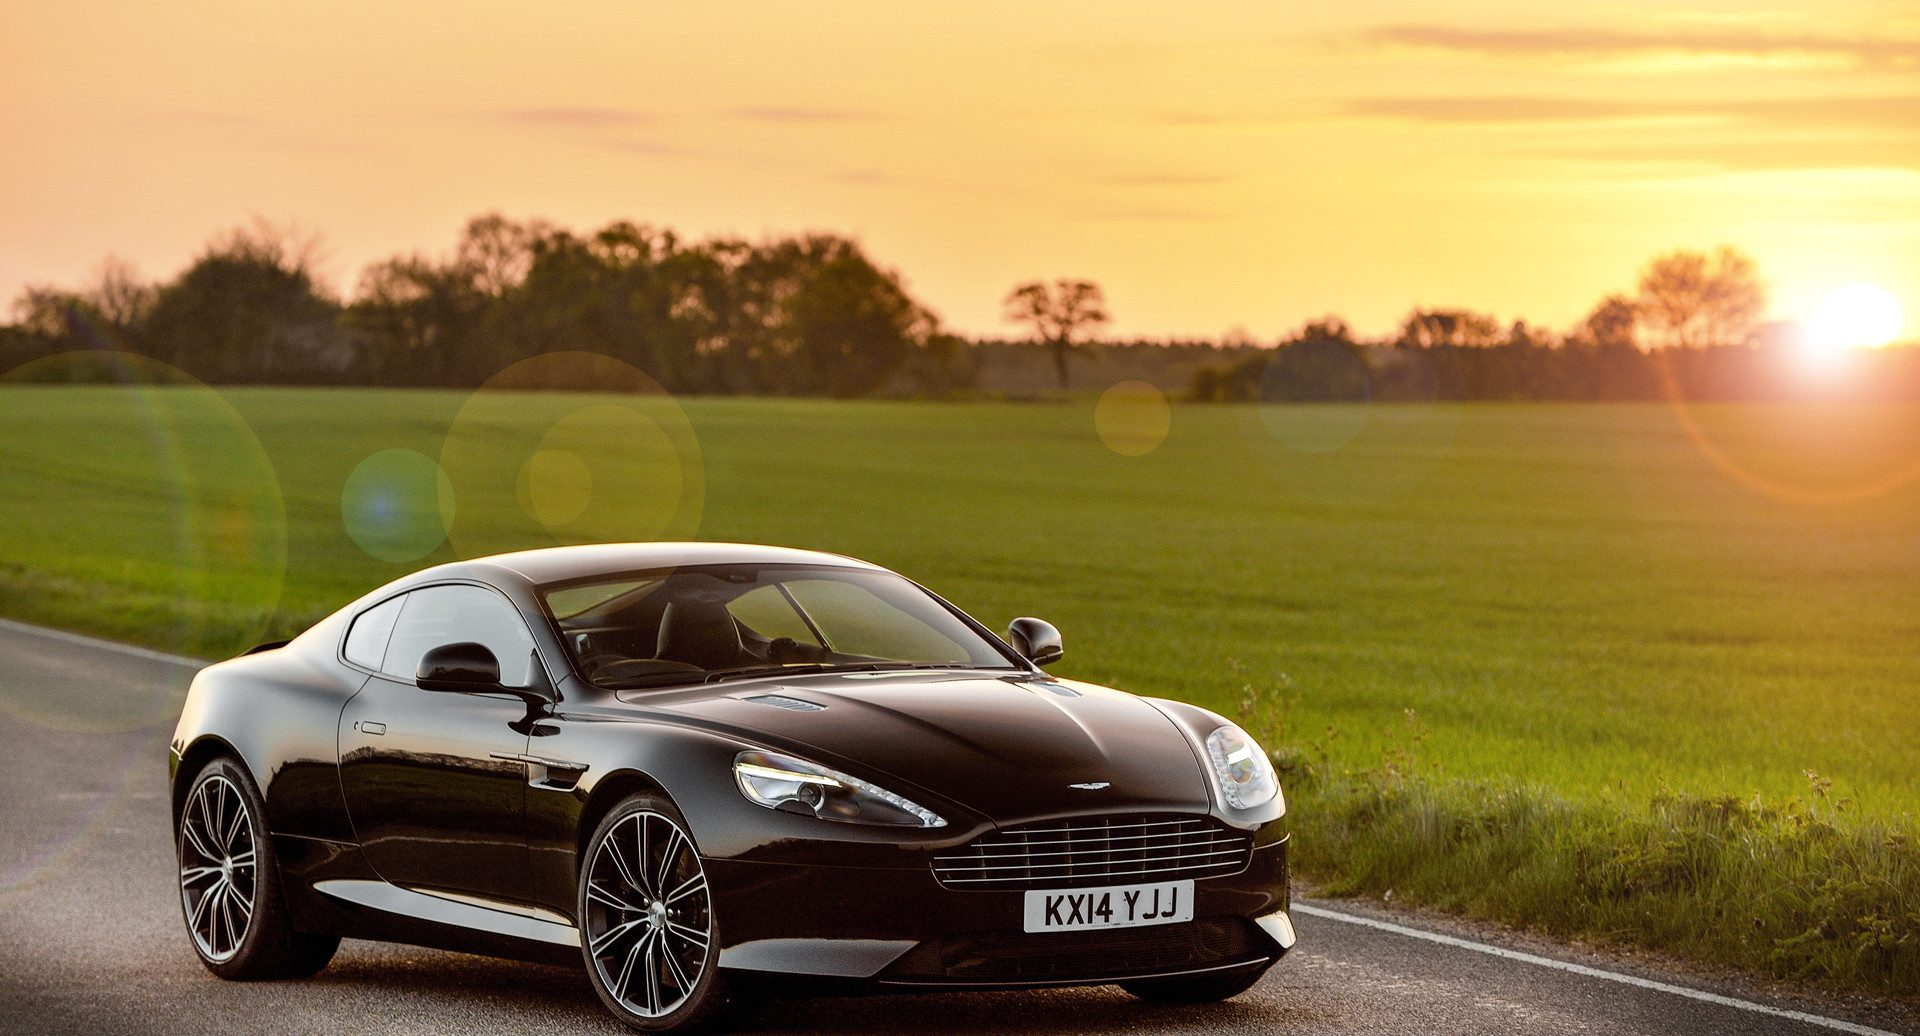 2015 Aston Martin Db9 Carbon Edition Wallpapers Supercars Net